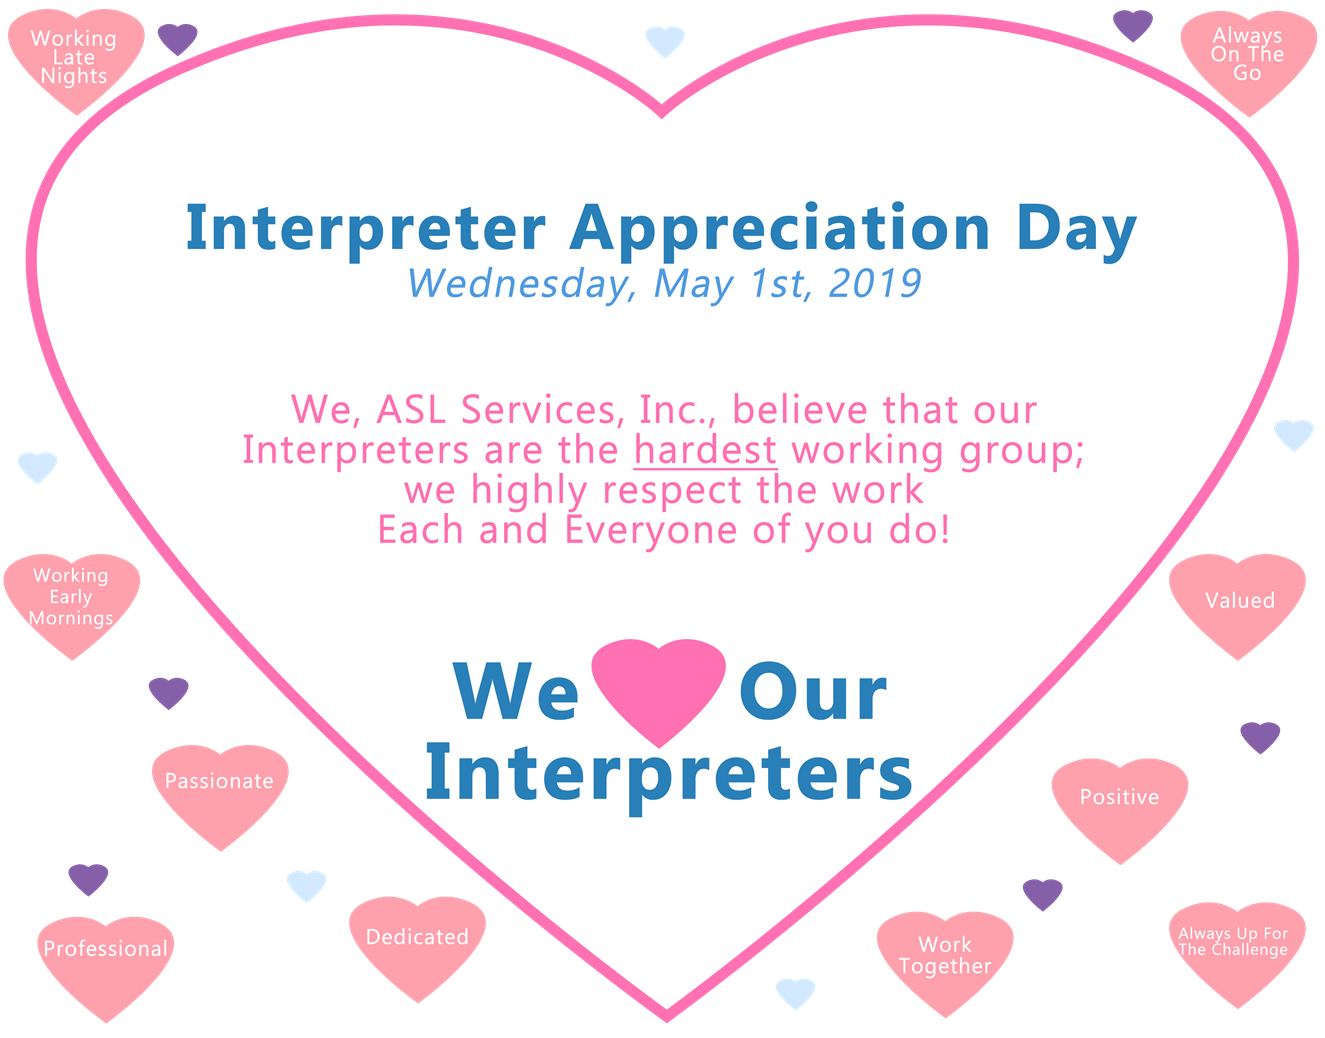 Interpeter appreciation day - we heart our interpreters image